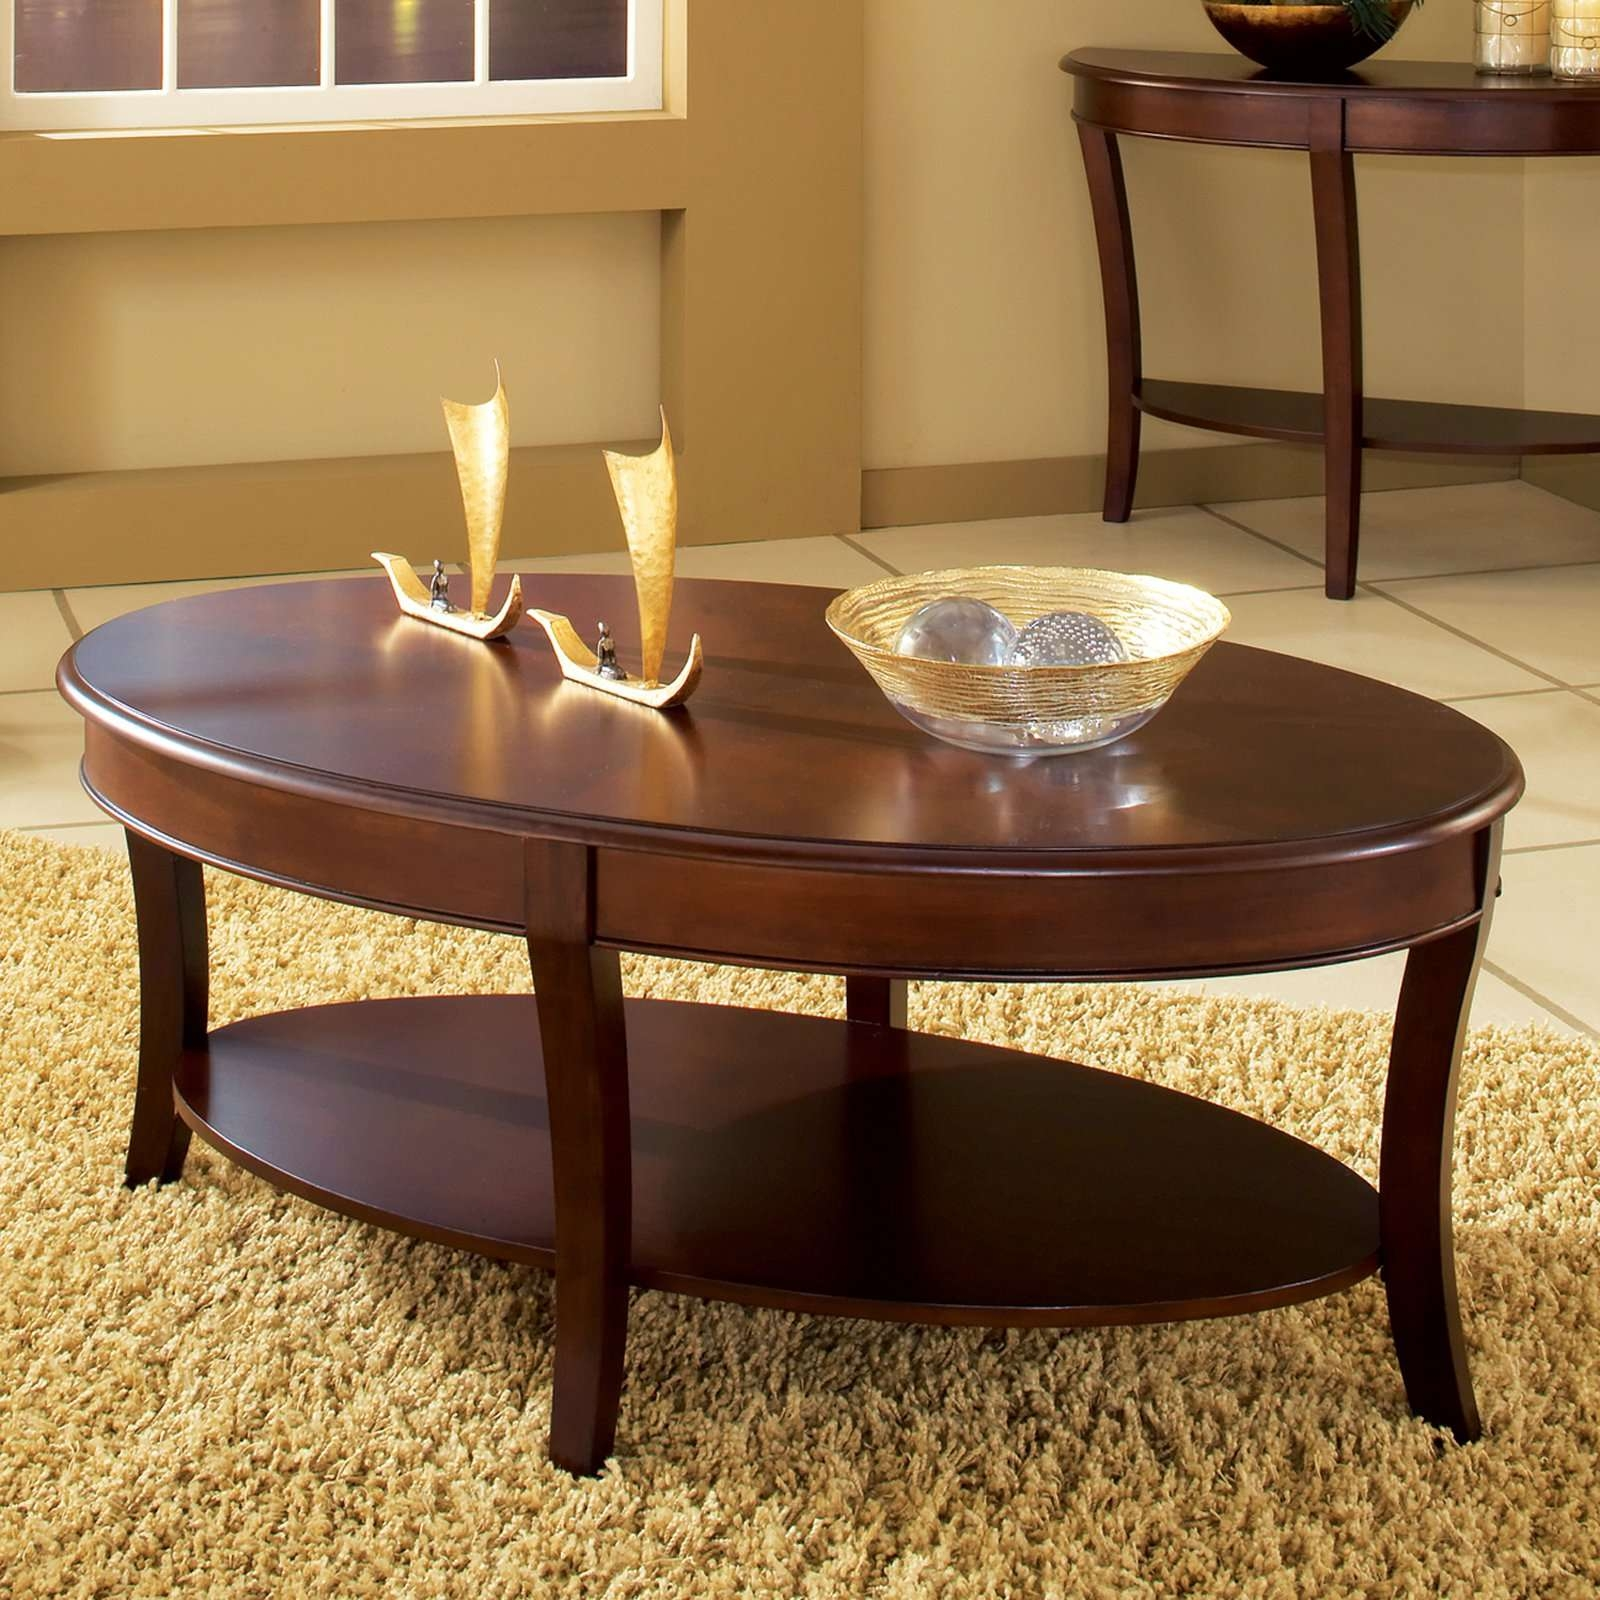 Widely Used Oval Wood Coffee Tables Intended For Steve Silver Troy Oval Cherry Wood Coffee Table – Walmart (View 20 of 20)